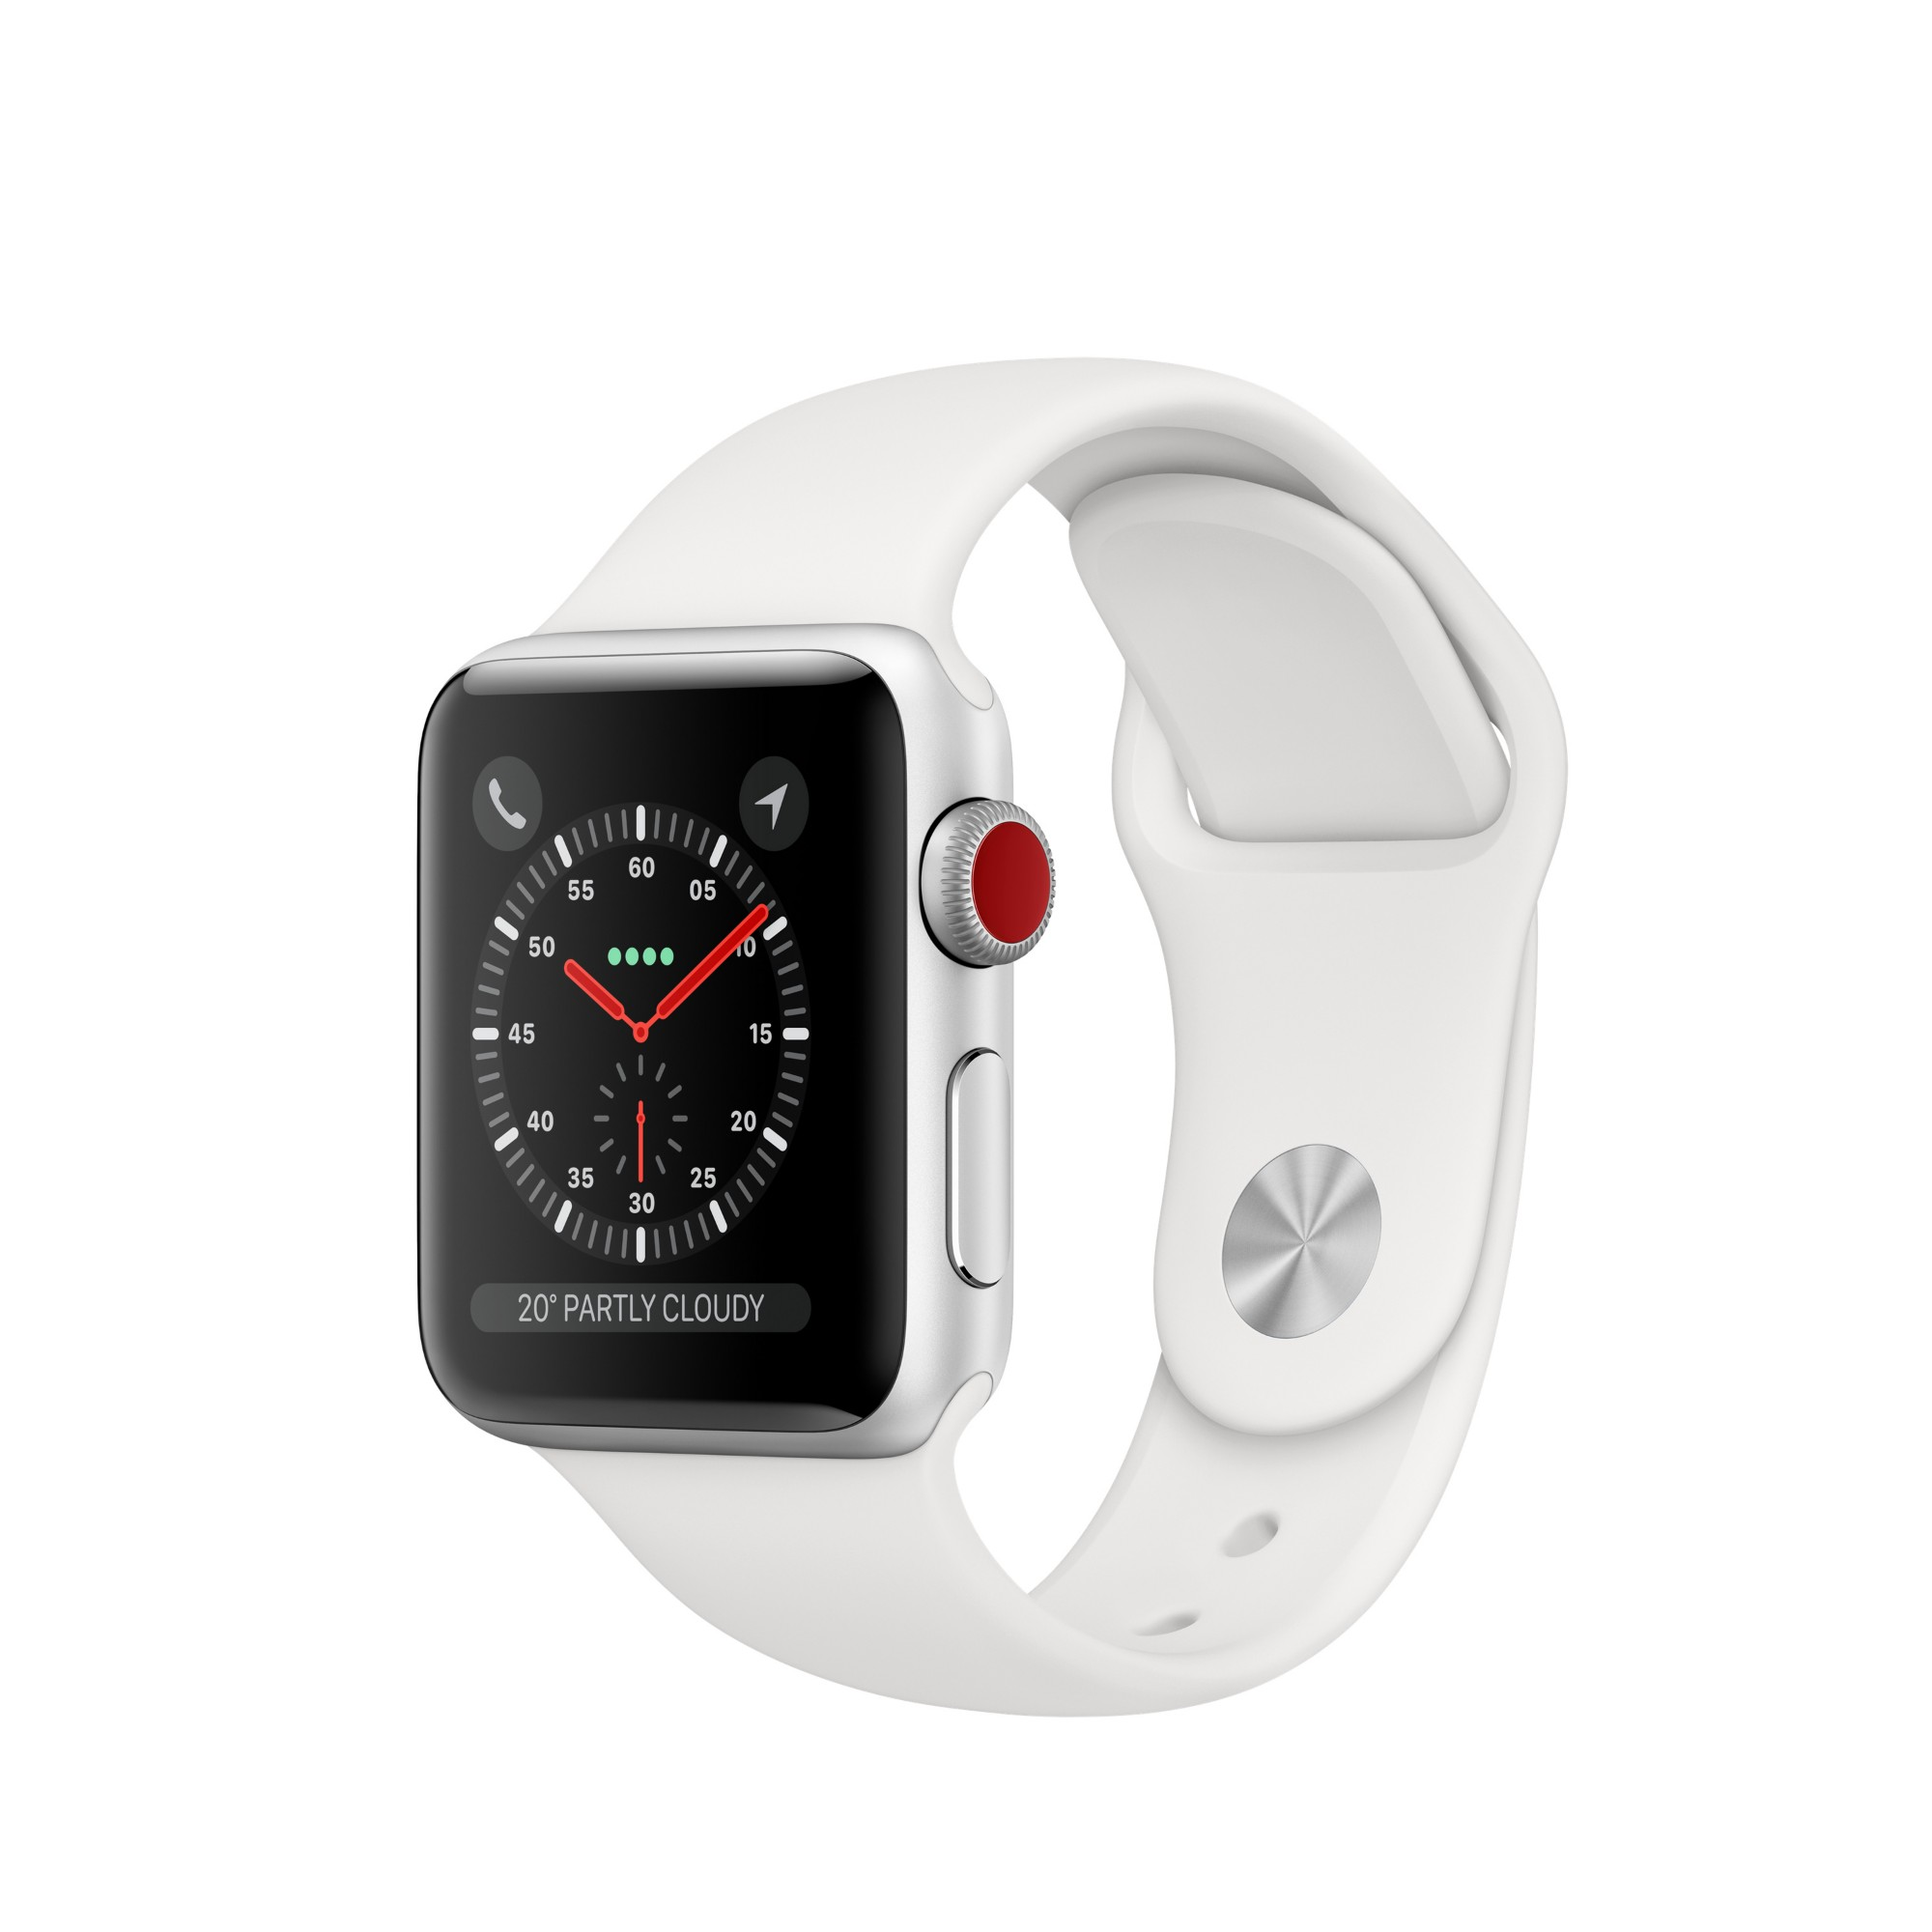 APPLE MTGN2B/A WATCH SERIES 3 SMARTWATCH SILVER OLED CELLULAR GPS (SATELLITE)